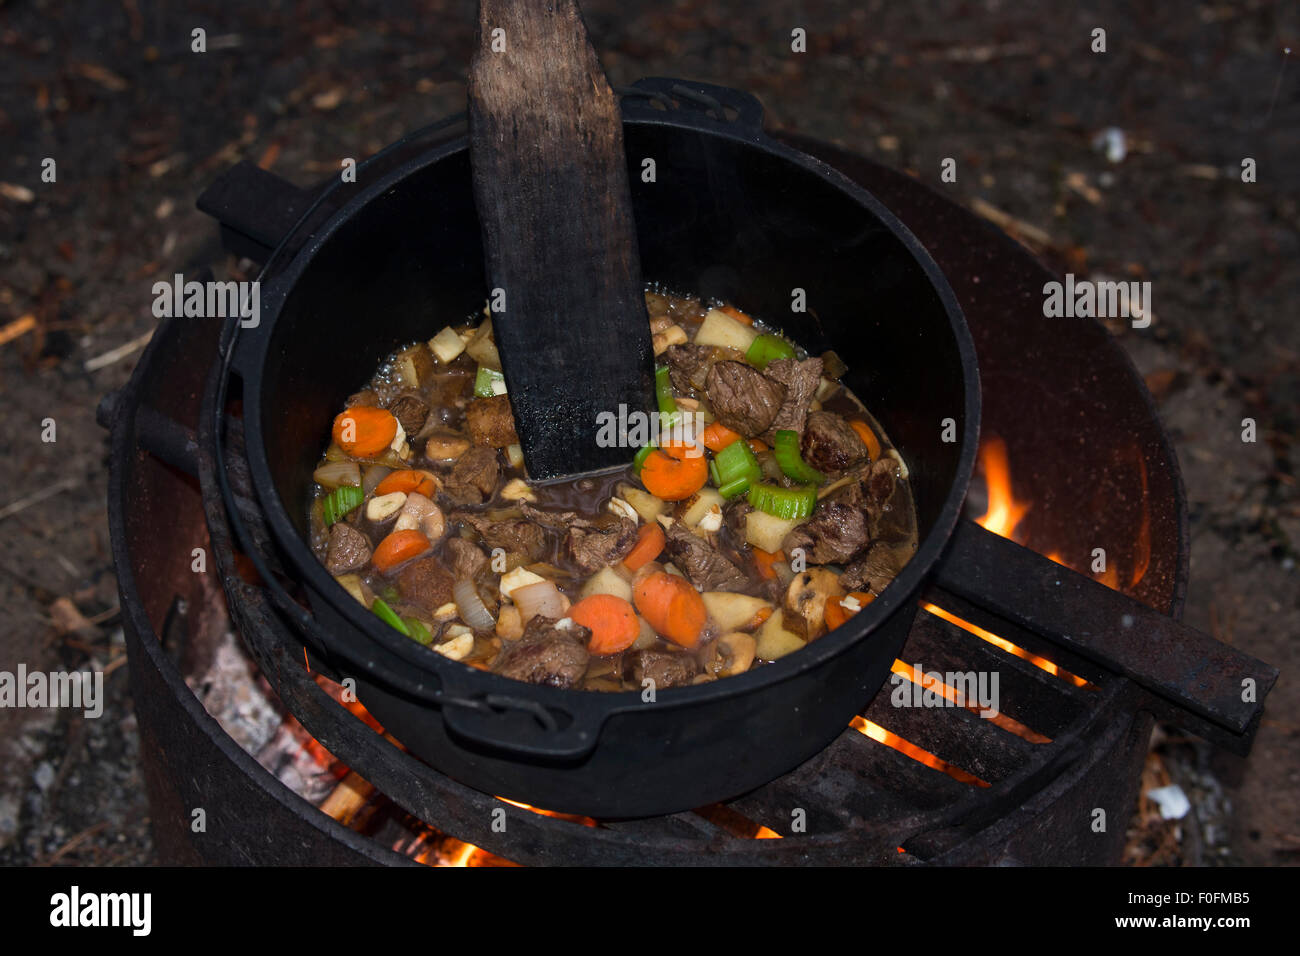 Beef stew cooking in a cast iron dutch oven over an open for How to cook in a dutch oven over a campfire